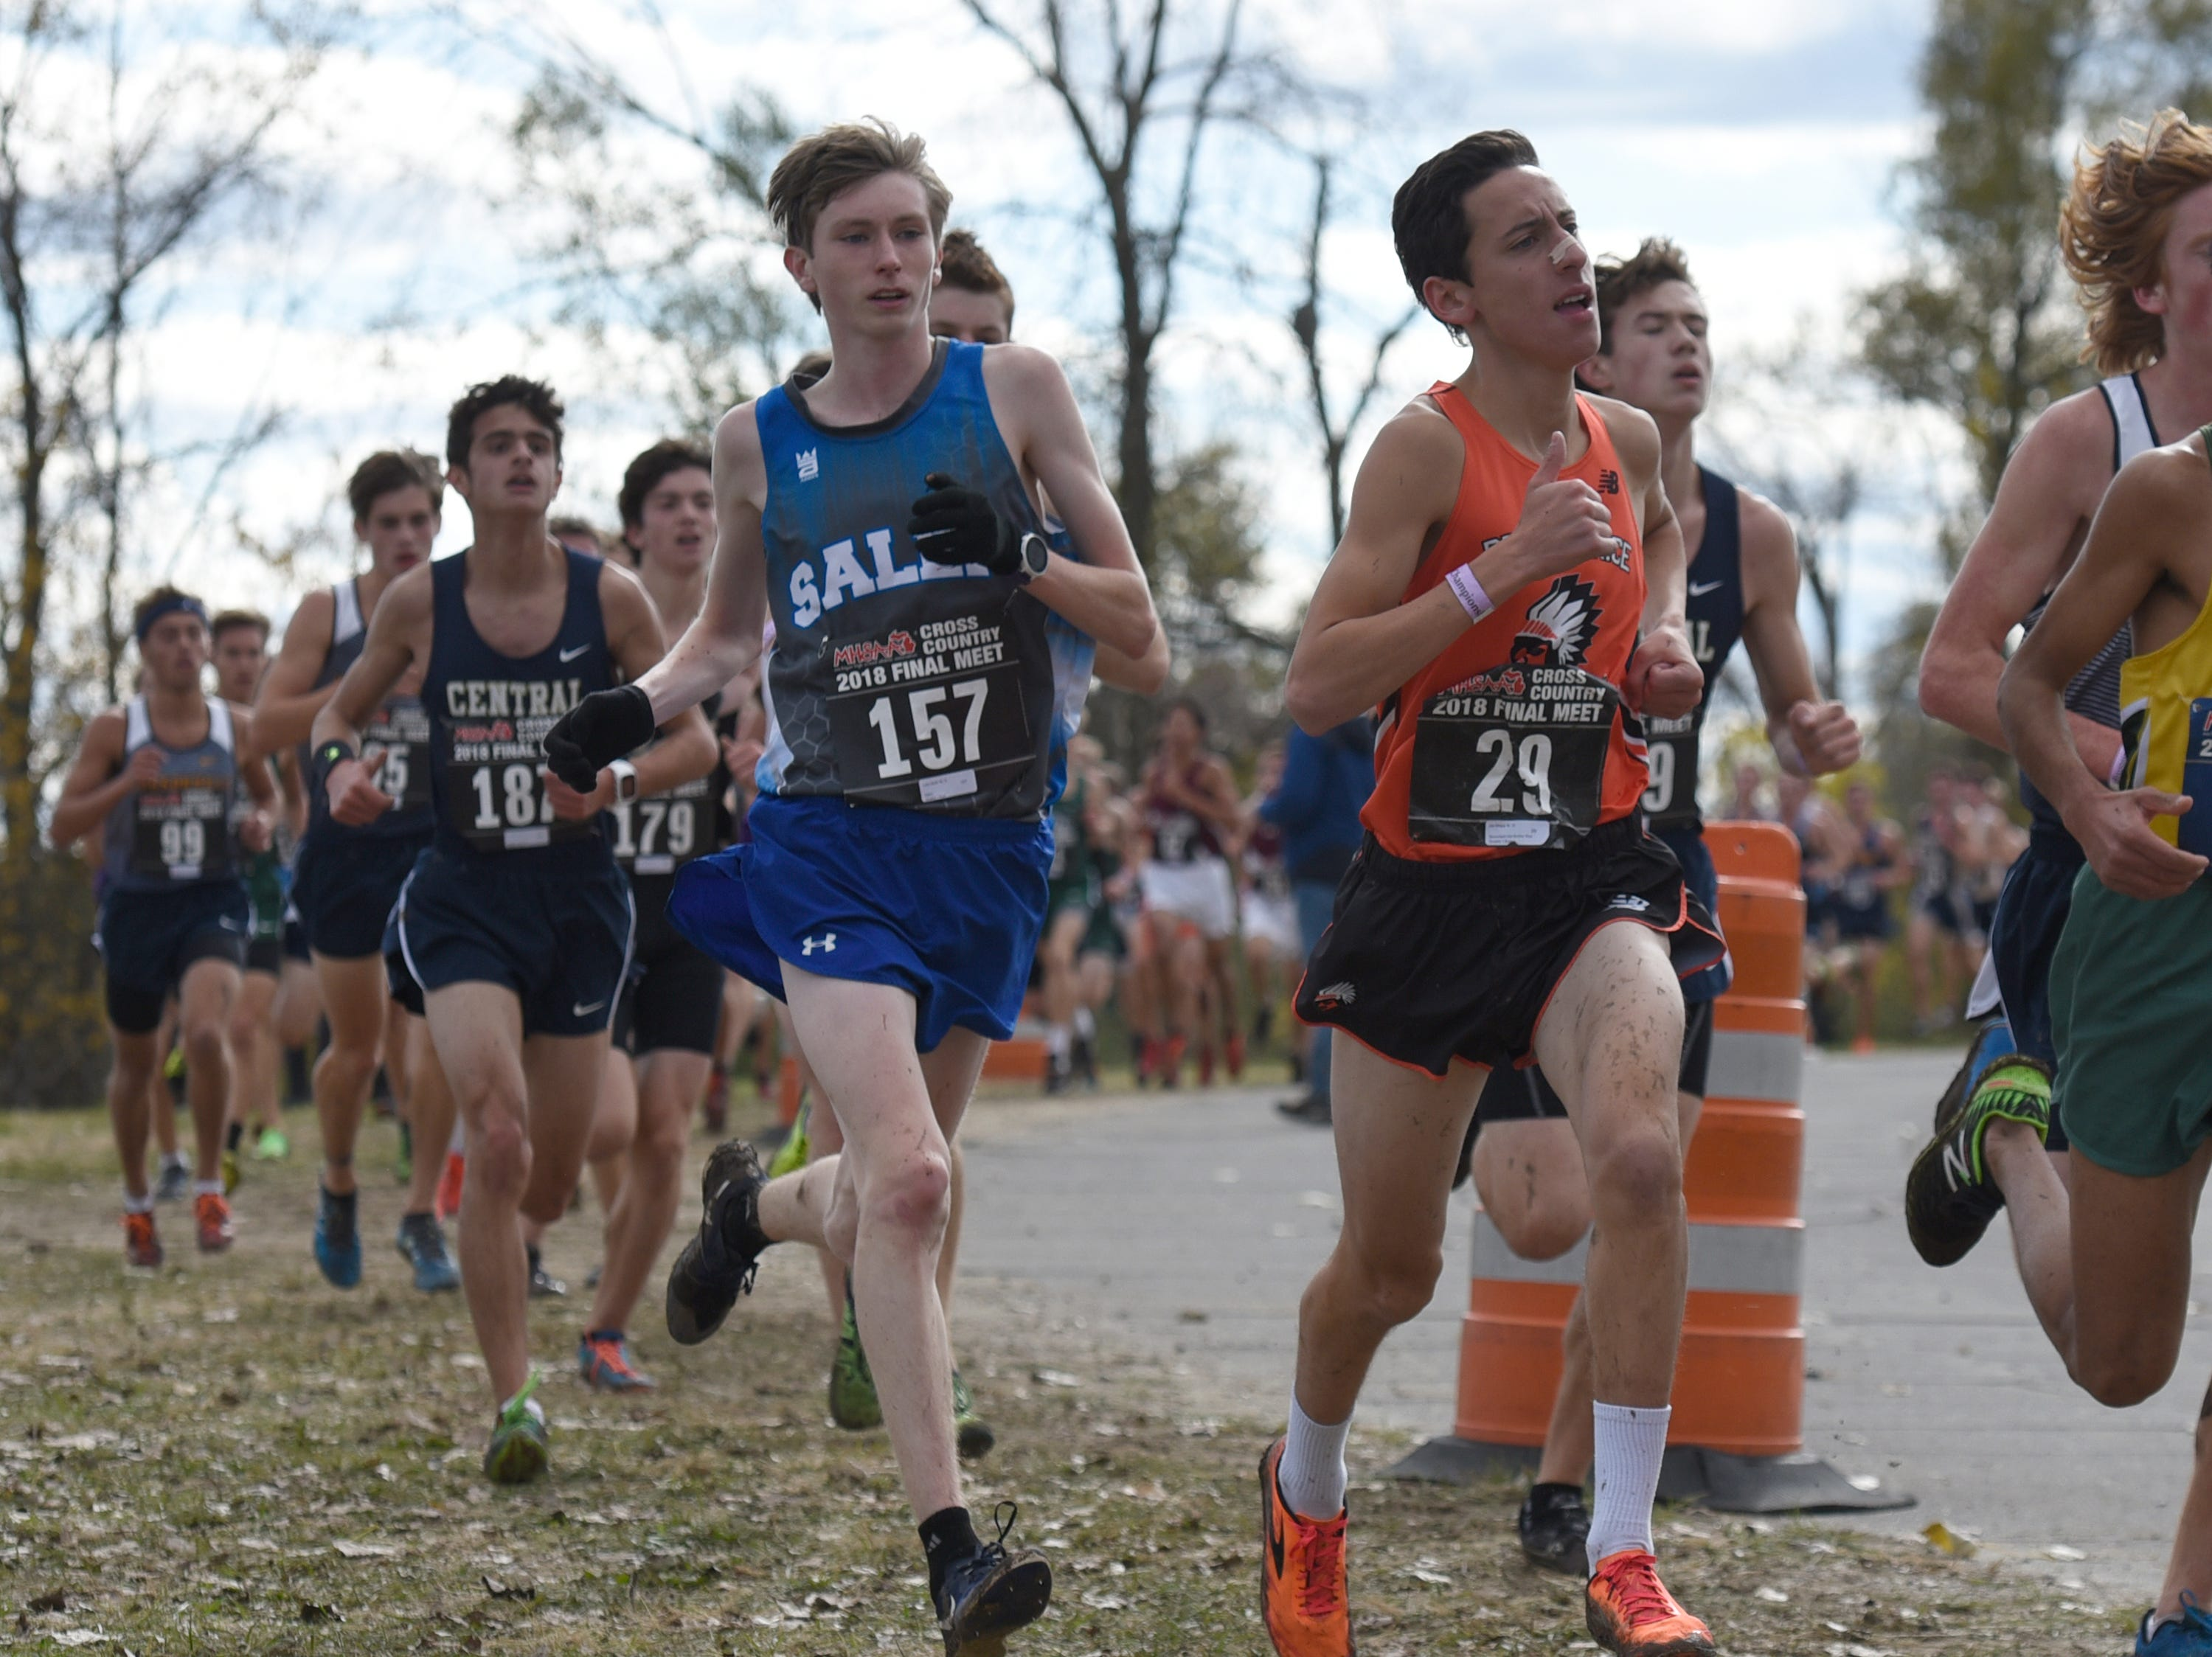 Salem's  Luke Haran (157) and Brother Rice runner Joe Shaya (29) during the Division 1 2018 cross country finals at Michigan International Speedway.